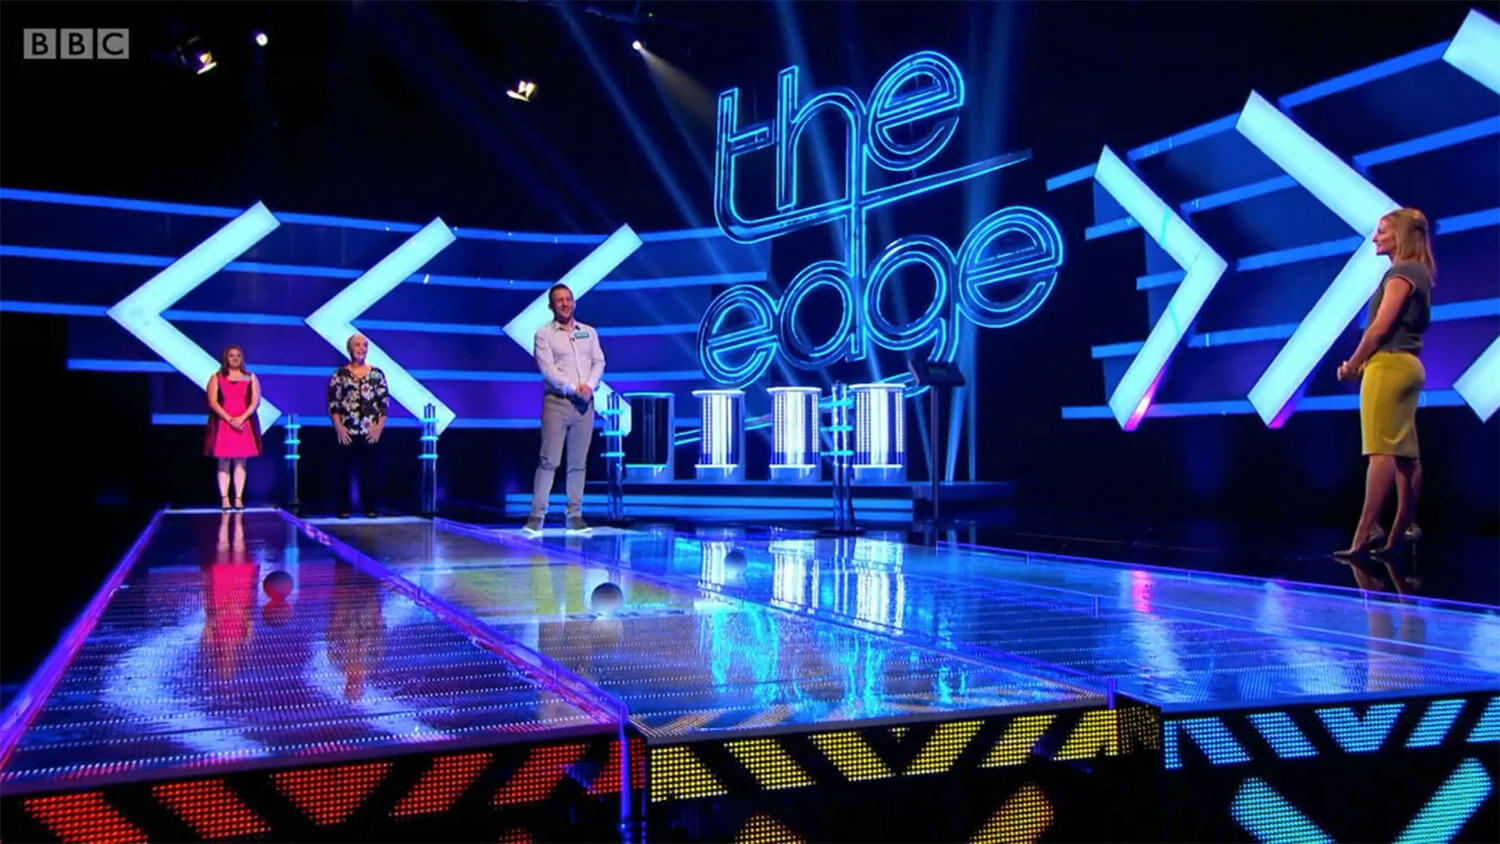 BBC's The Edge studio contestants